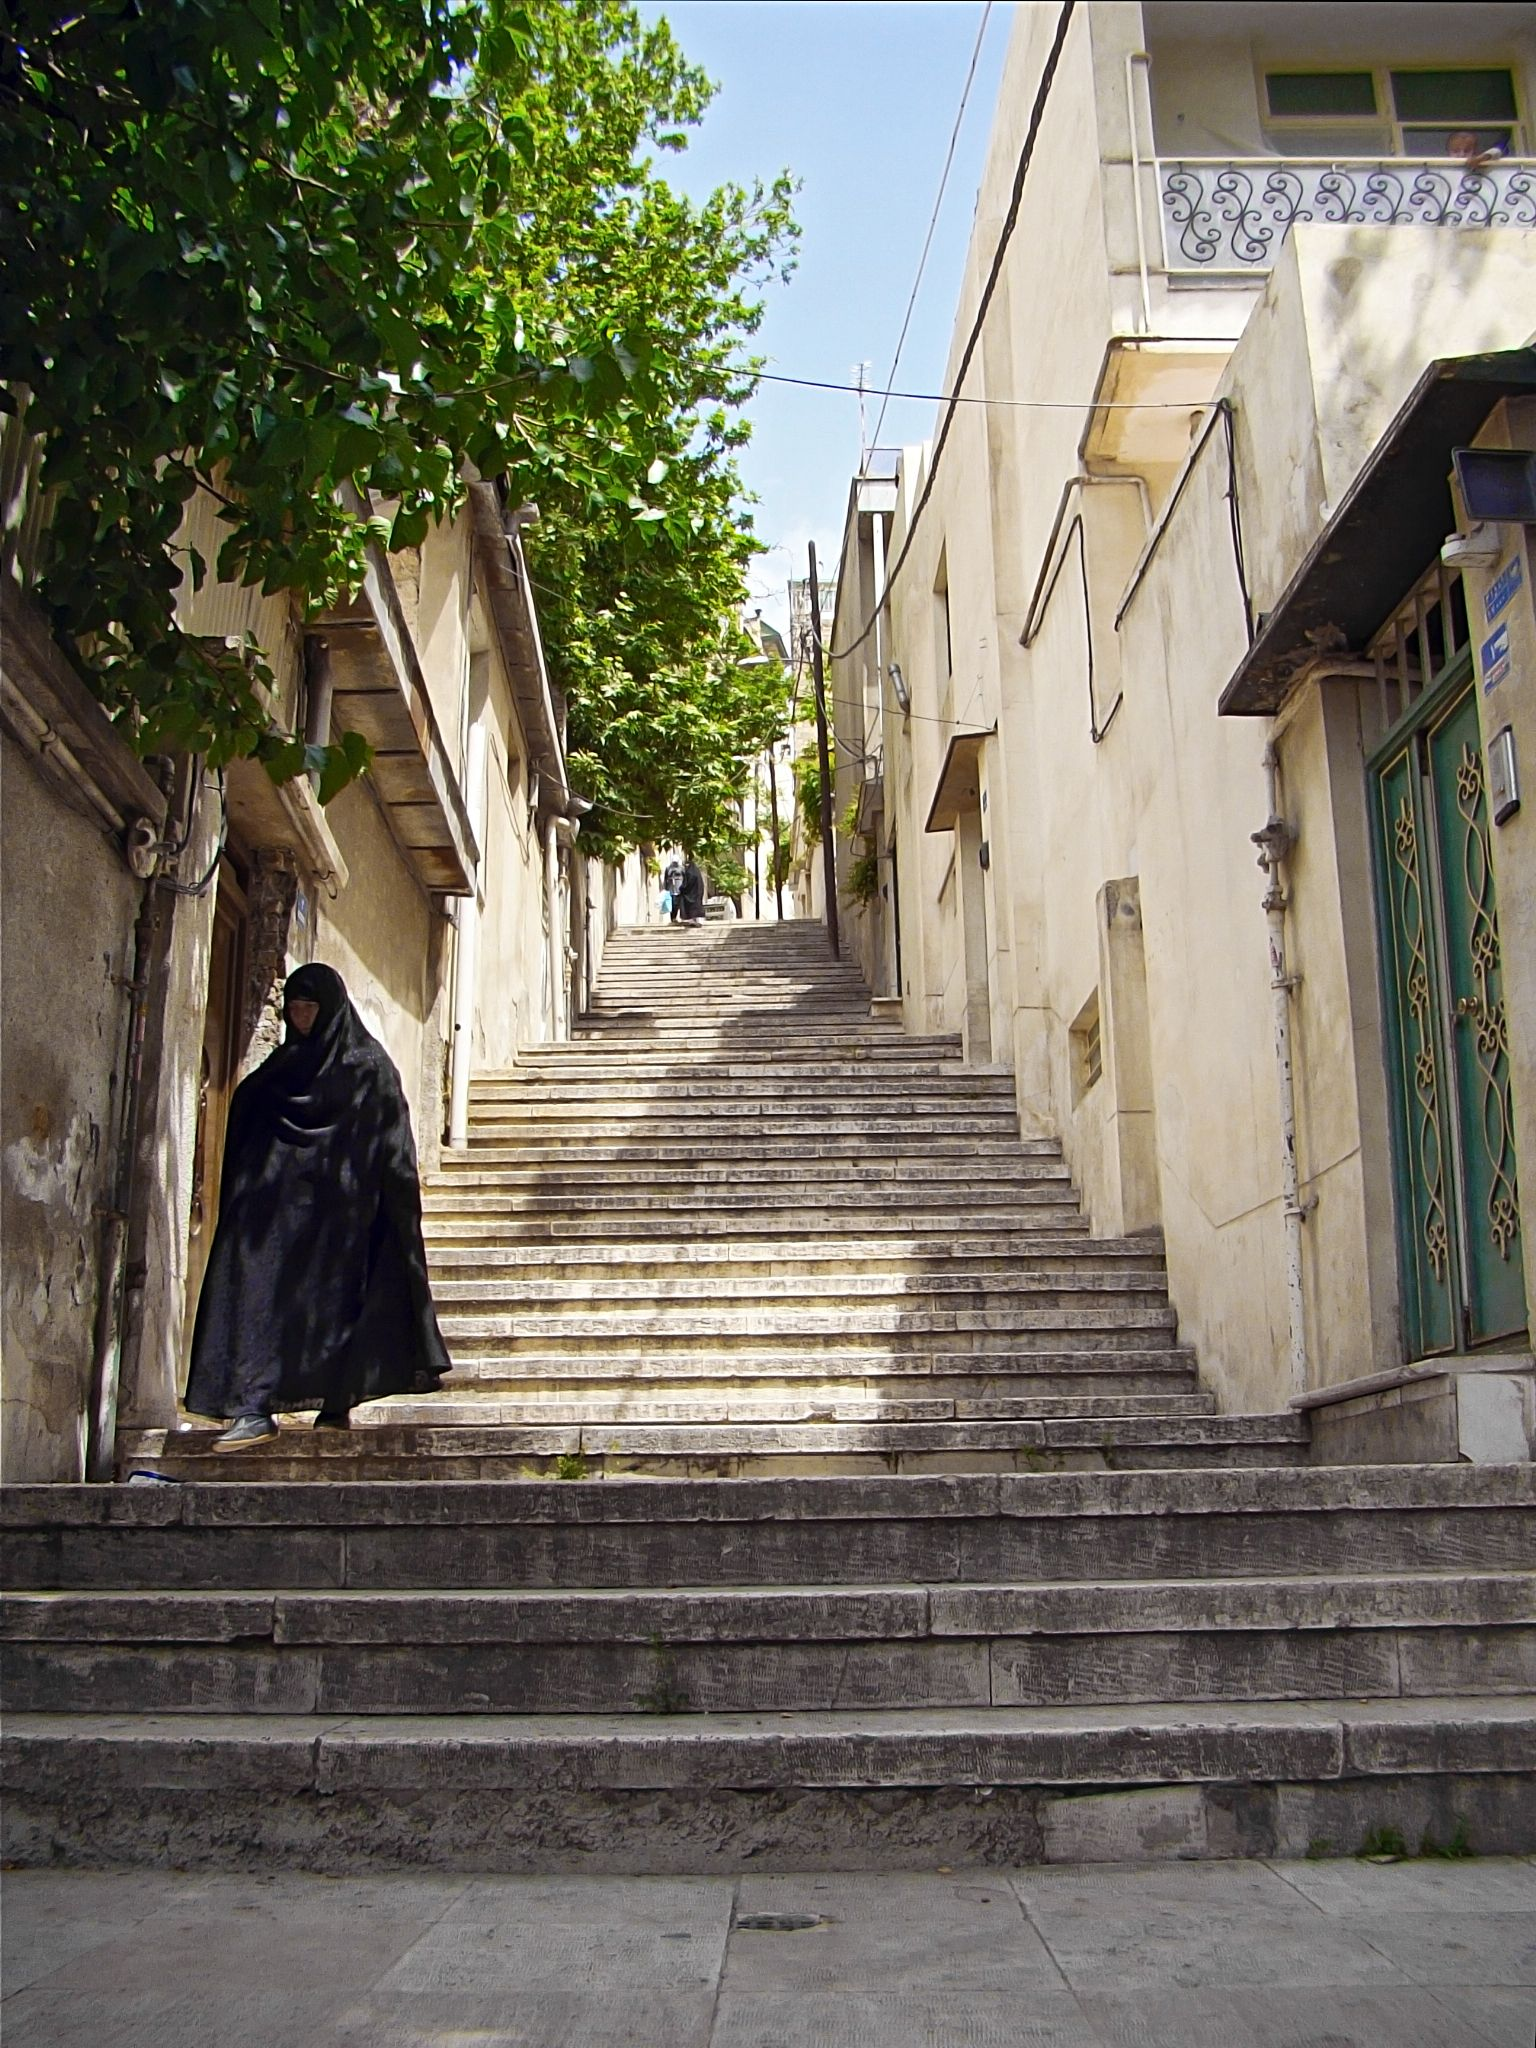 Stairs by asghar asem